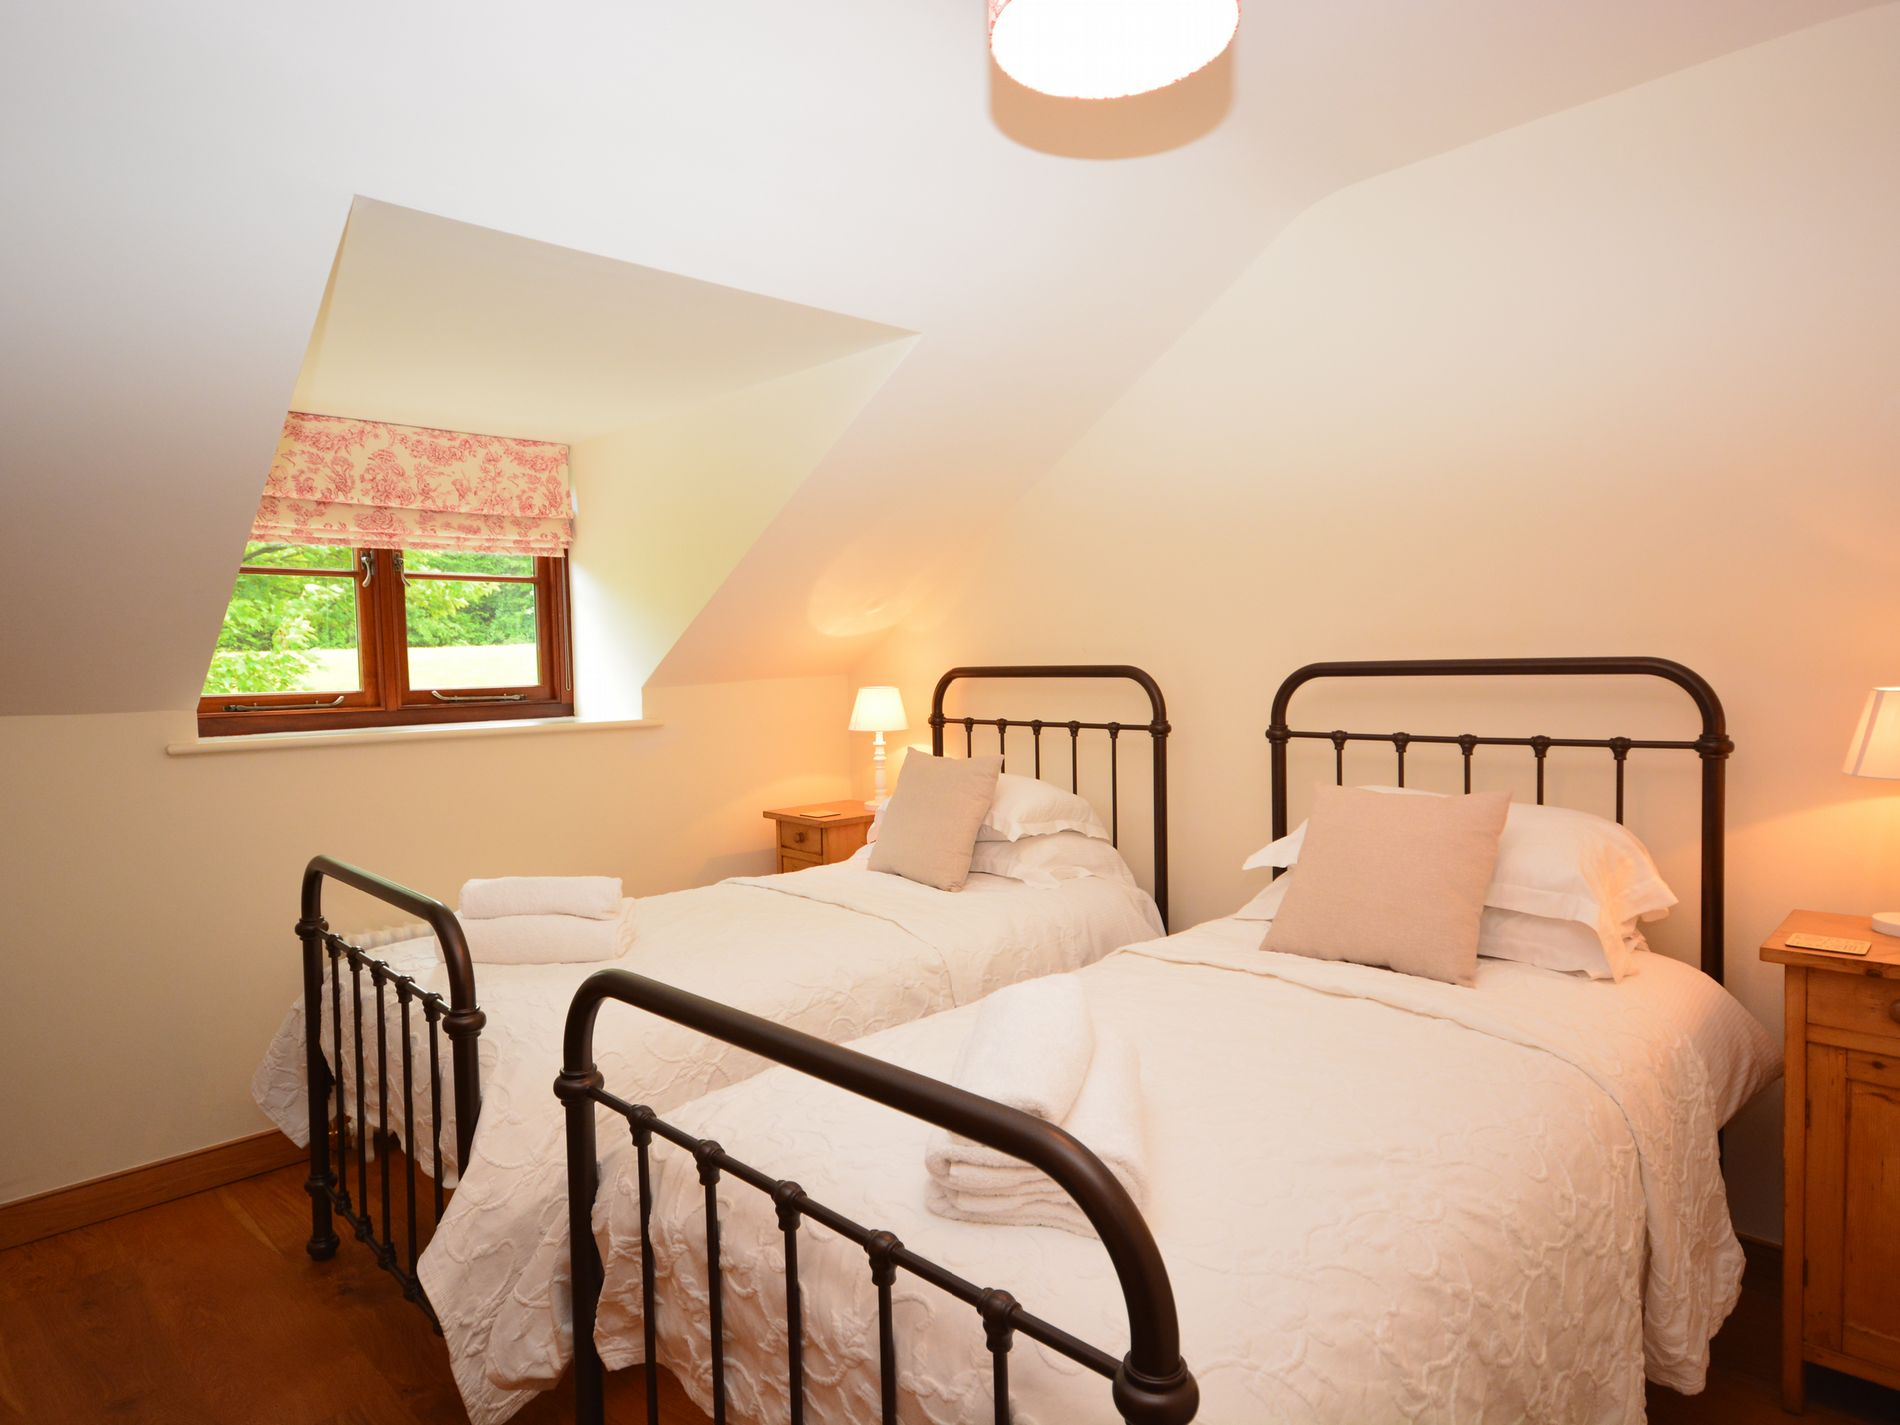 4 Bedroom Cottage in Frome, Dorset and Somerset